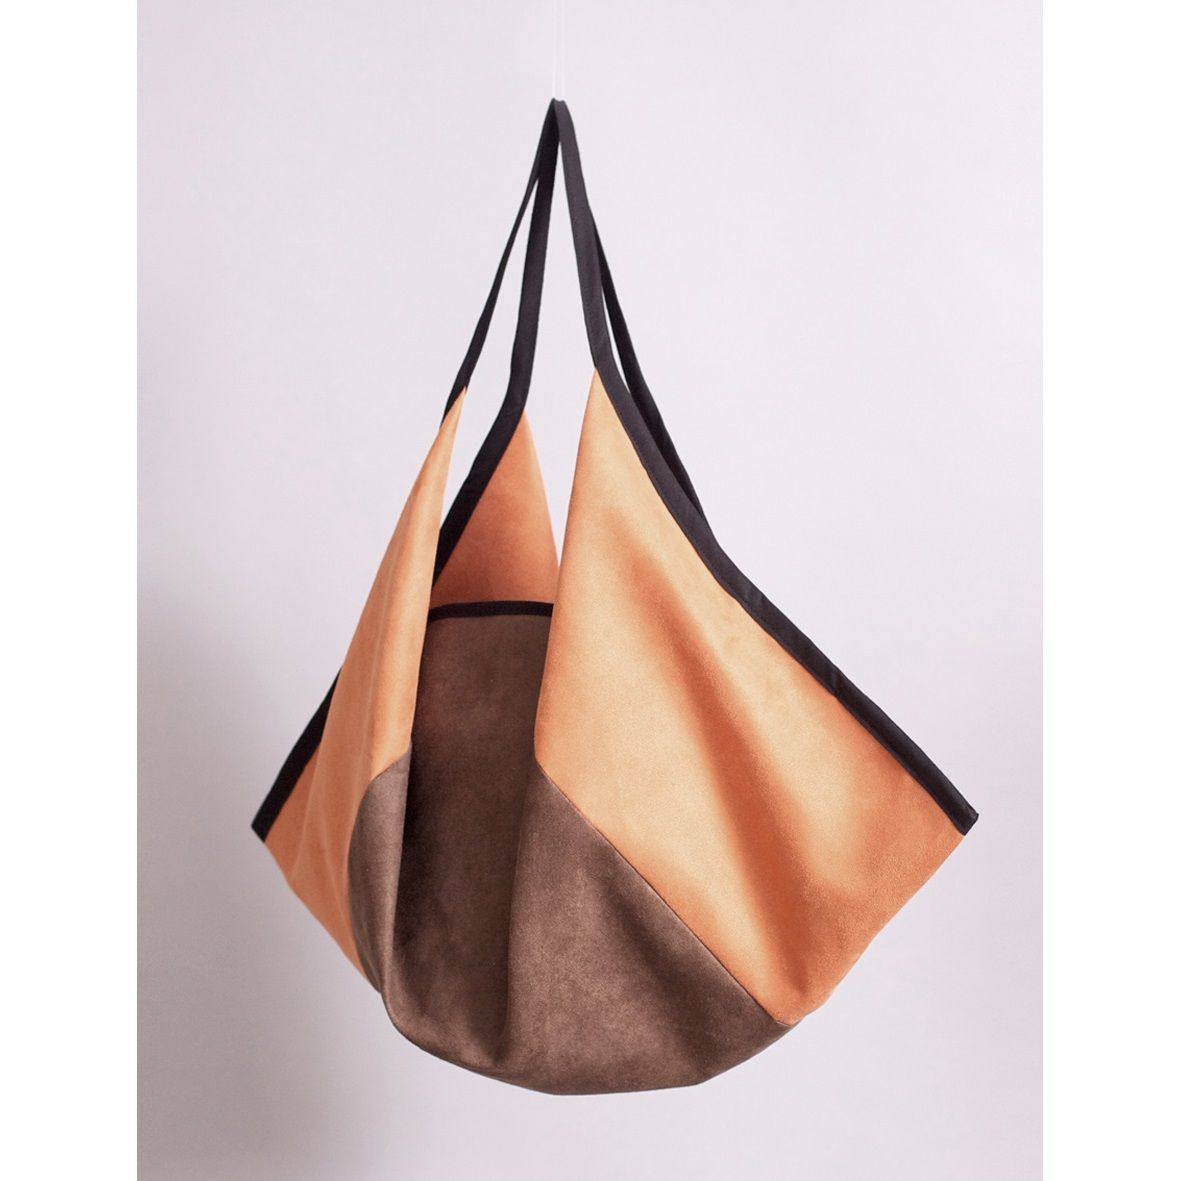 607fc3a264cf Origamitasche | Pick of the Month @ stylemarks | Origami bag ...